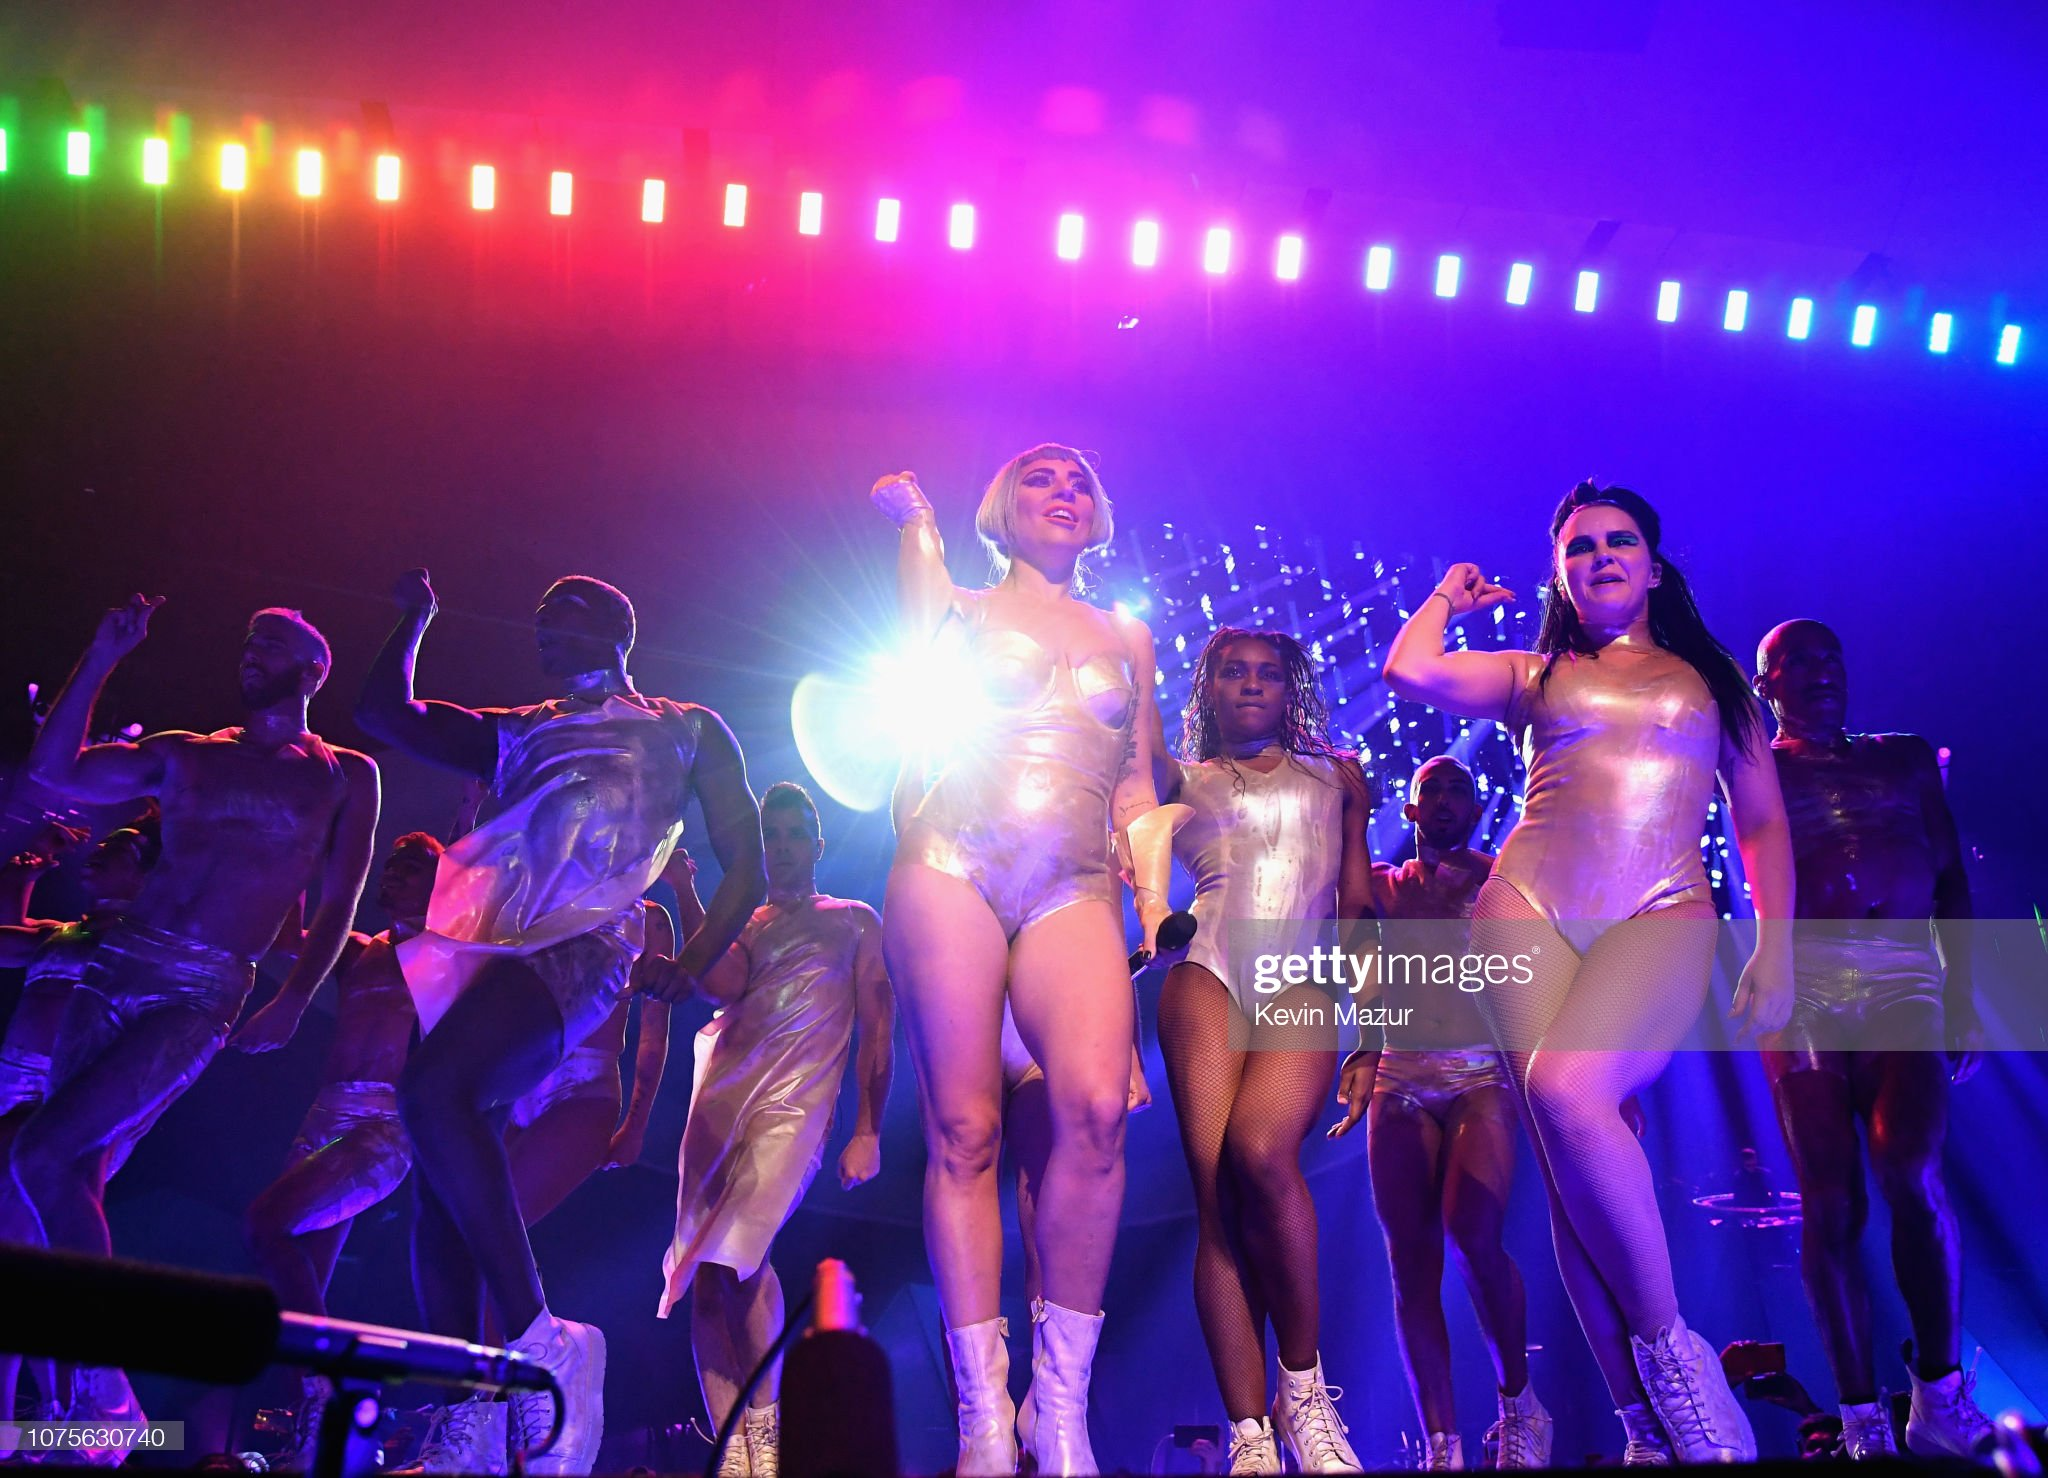 lady-gaga-performs-during-her-enigma-res